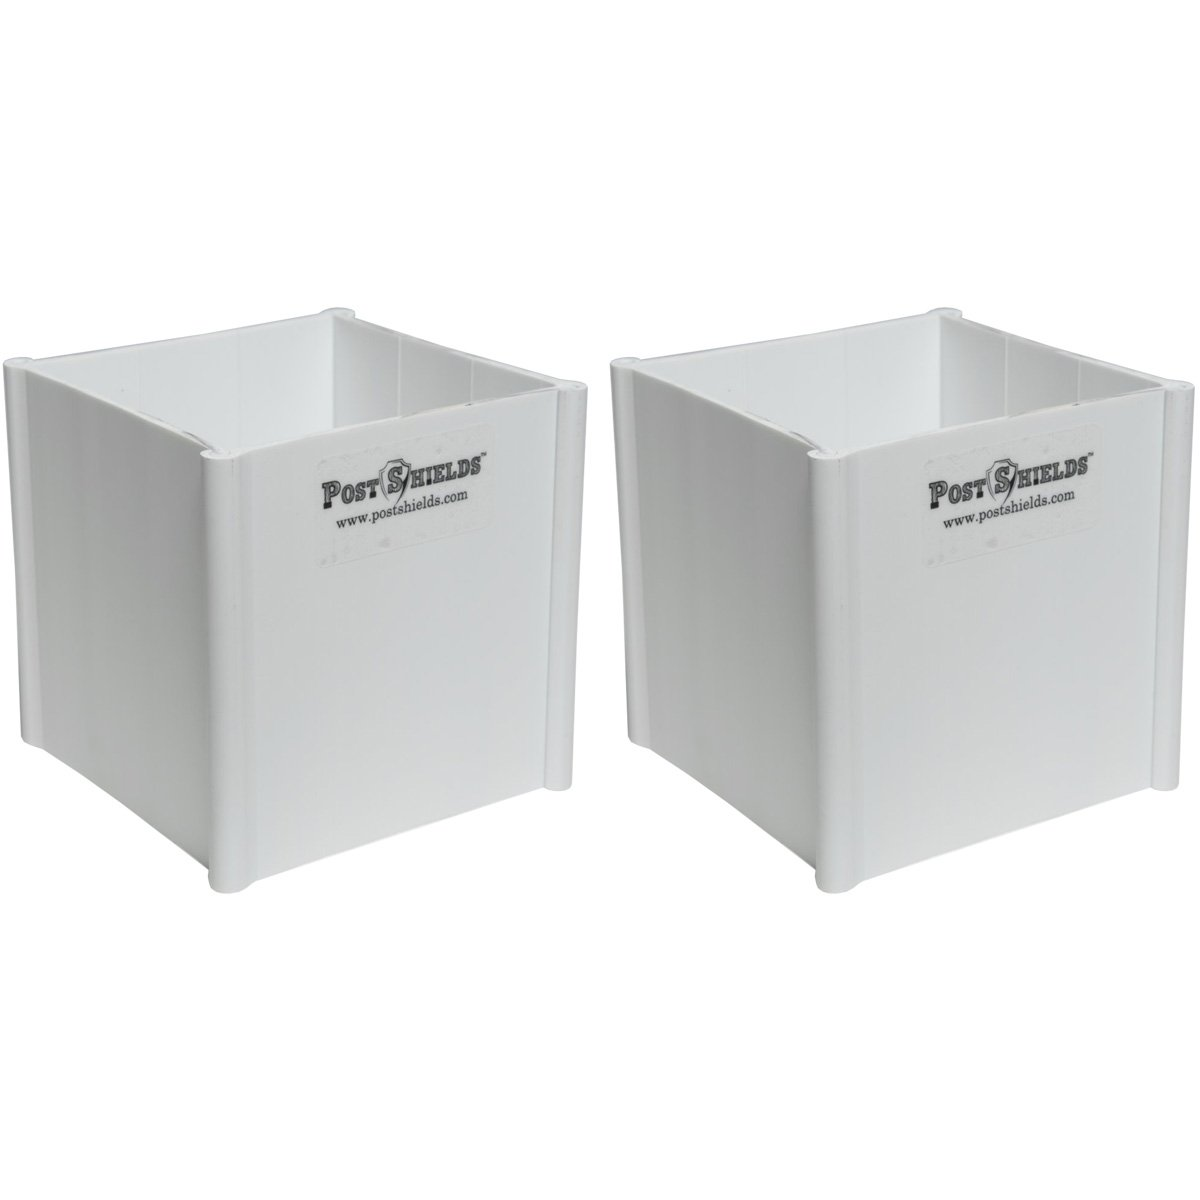 Pack of 2 - Post Shields 4'' x 4'' x 4'' (FITS 3.5'' x 3.5'' POSTS) - White - Fence Post Protection from Grass Trimmers